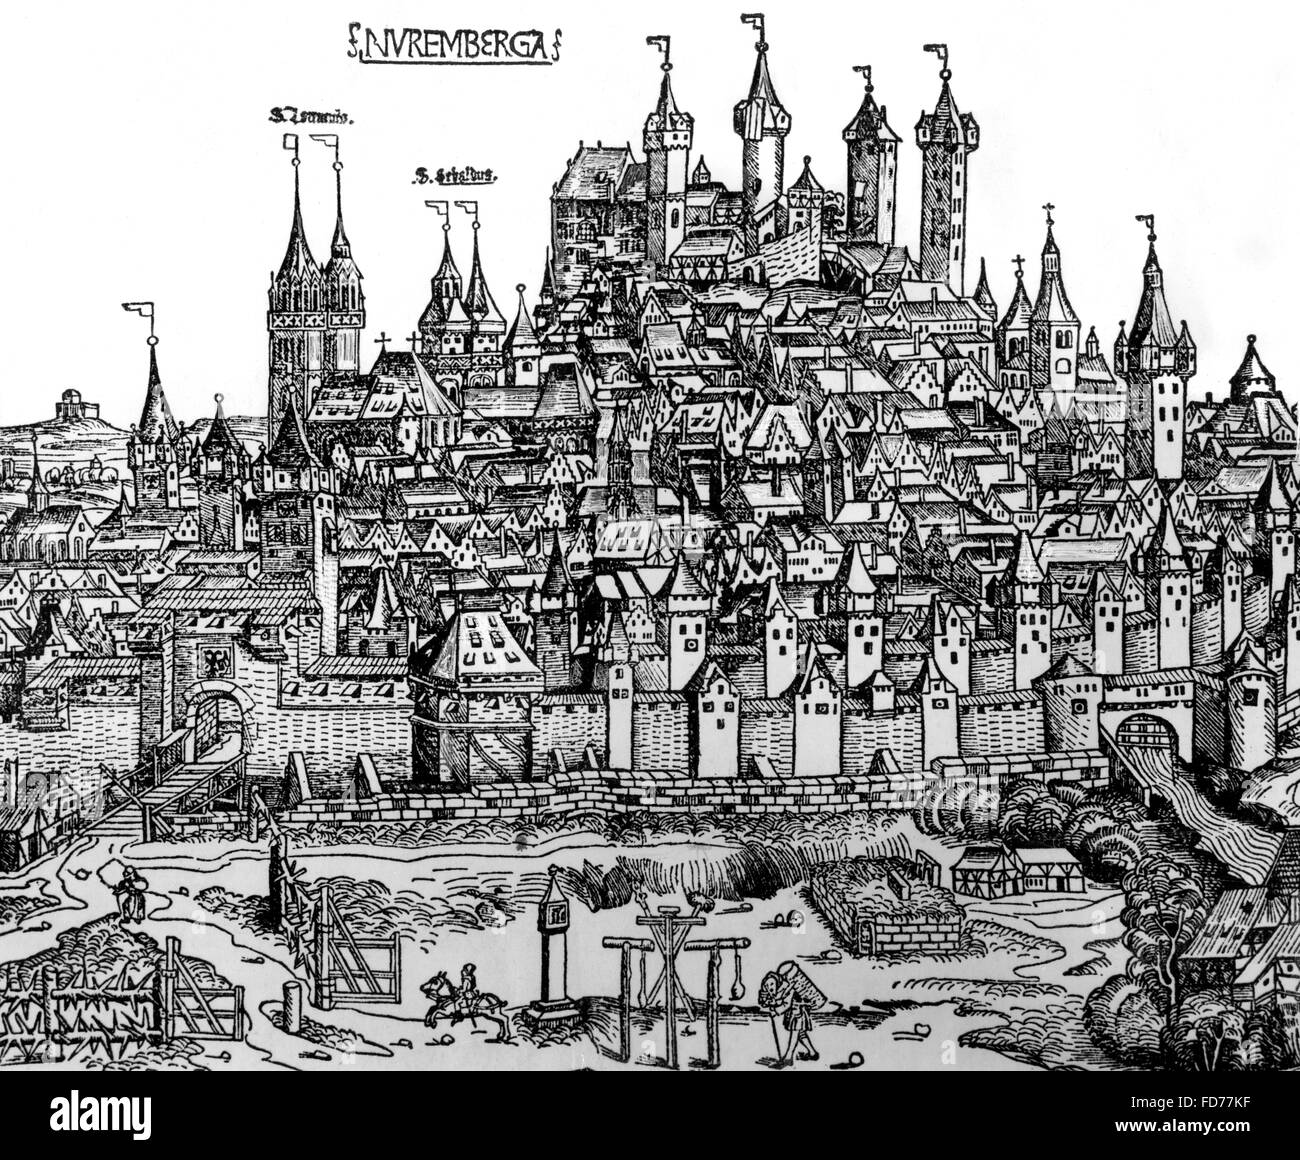 Prospect of Nuremberg from 1493 - Stock Image